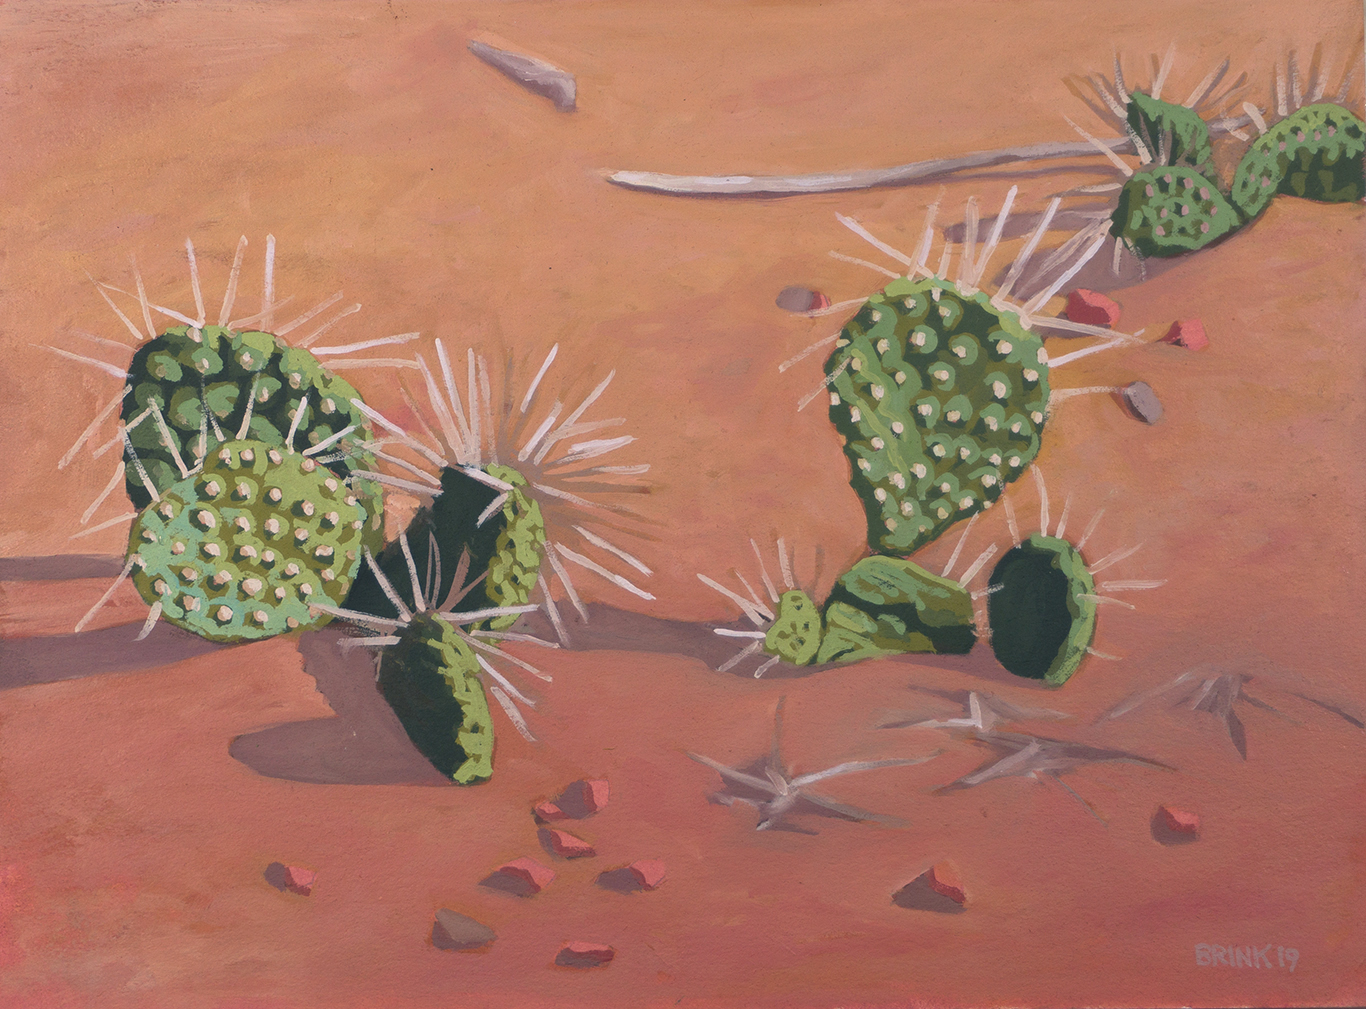 Prickly Pear study, 9 x 12 in, oil on paper, 2019